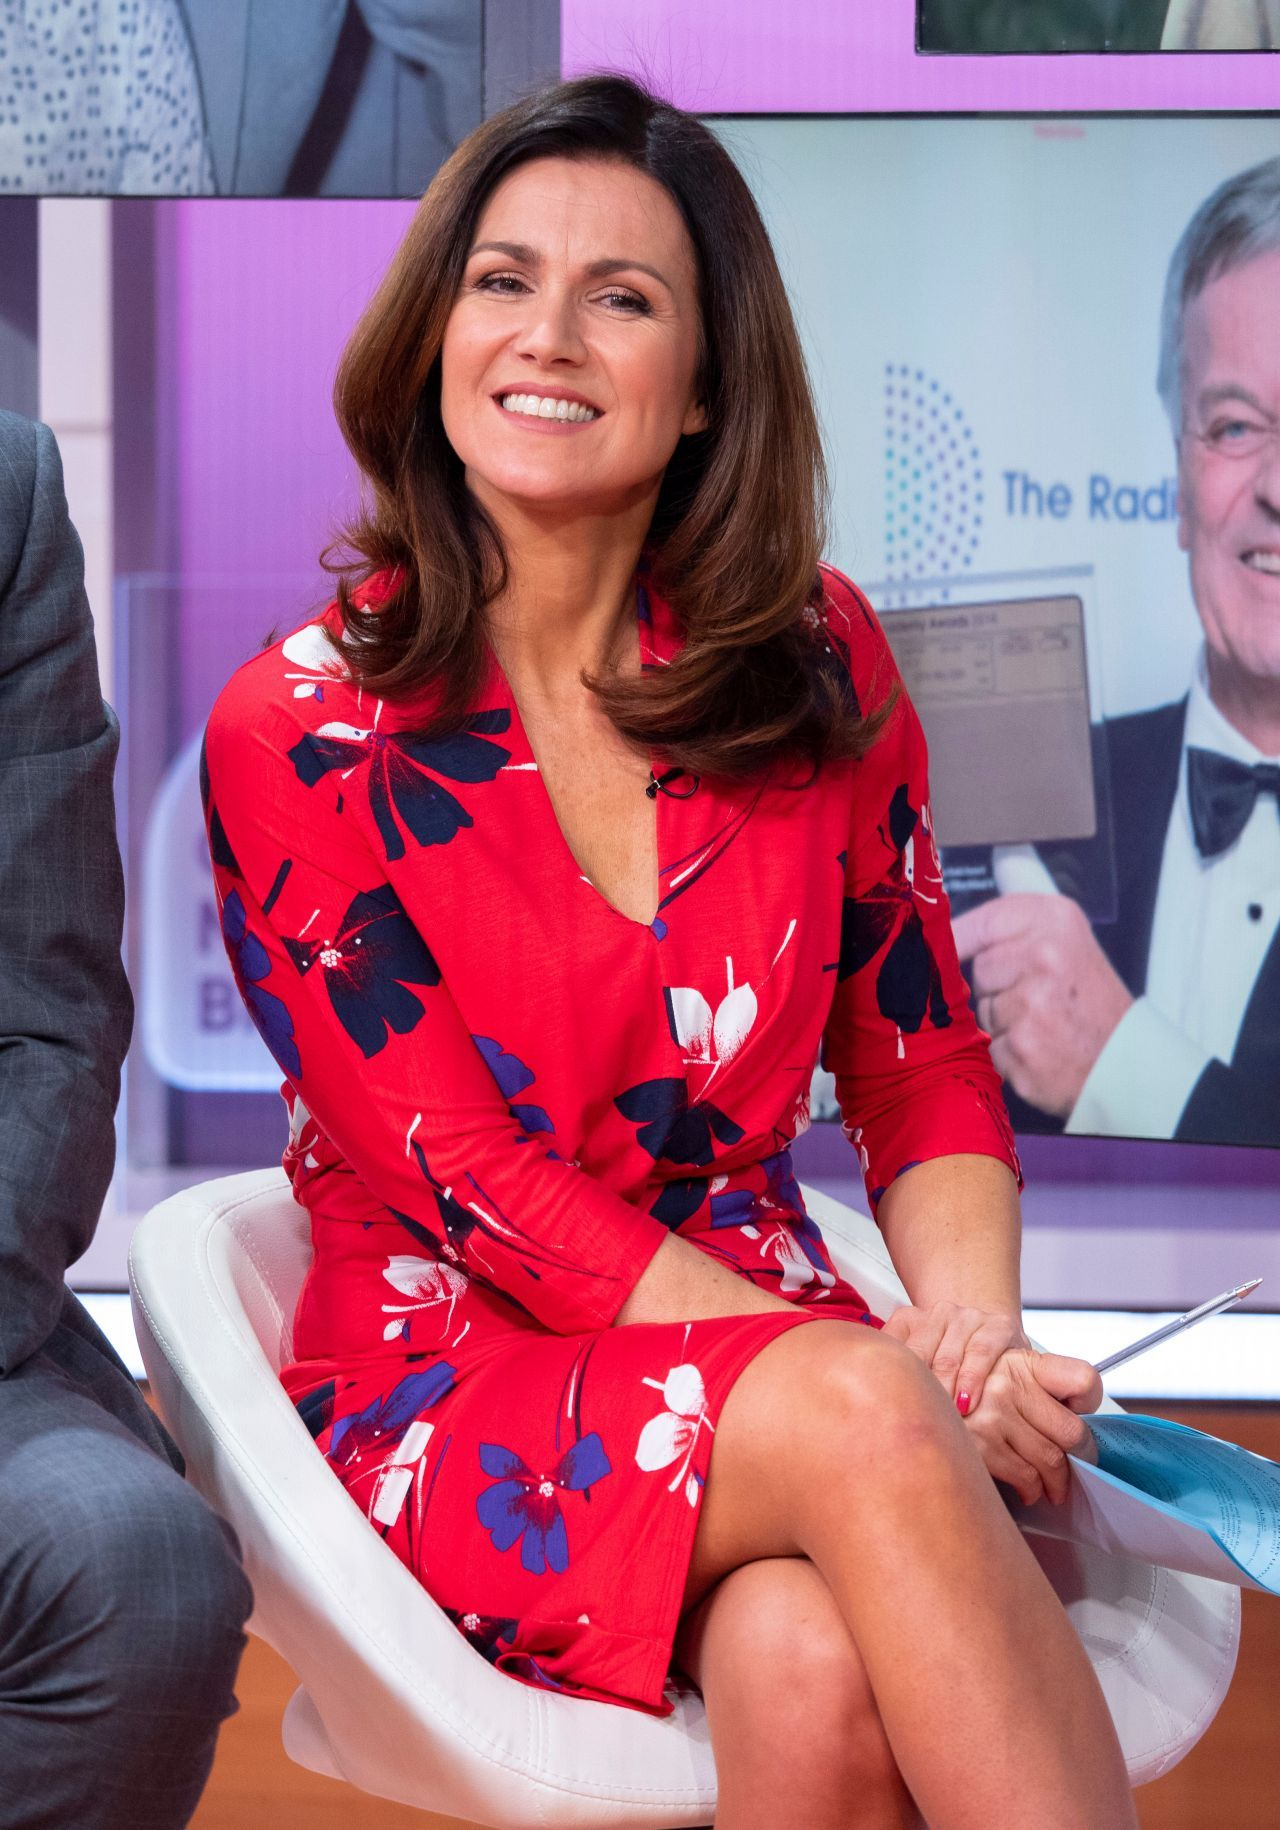 819378578d4d5 Susanna Reid | Susanna Reid in 2019 | Susanna reid, Fashion, Good ...